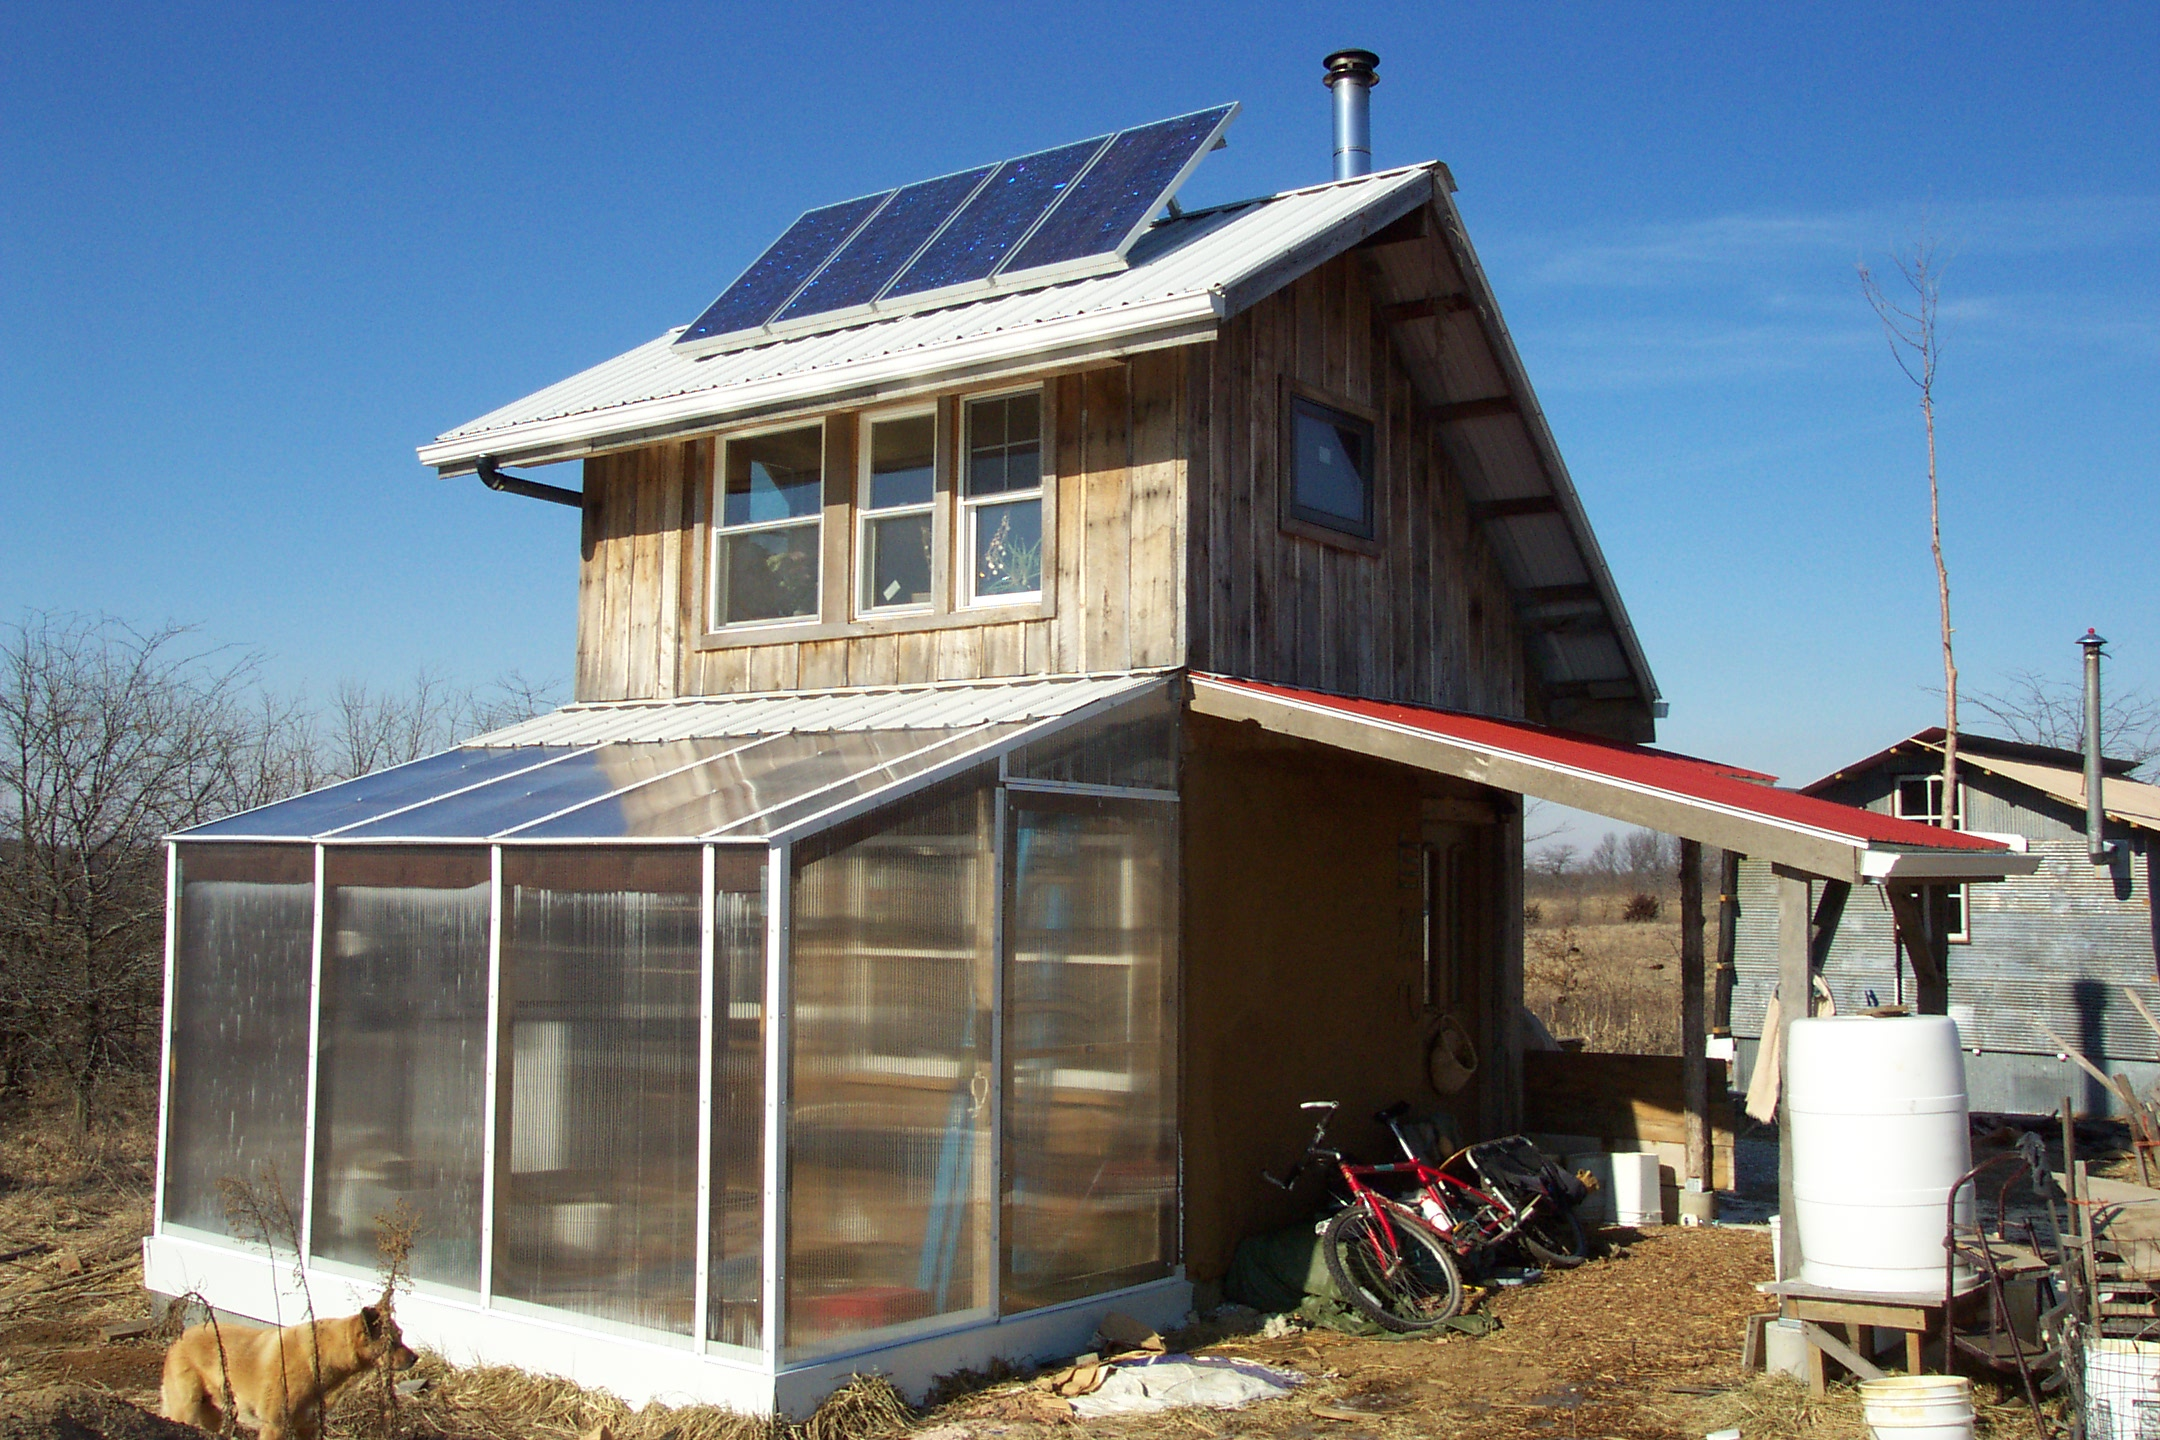 Sustainable home heating dancing rabbit ecovillage for Solar powered home designs